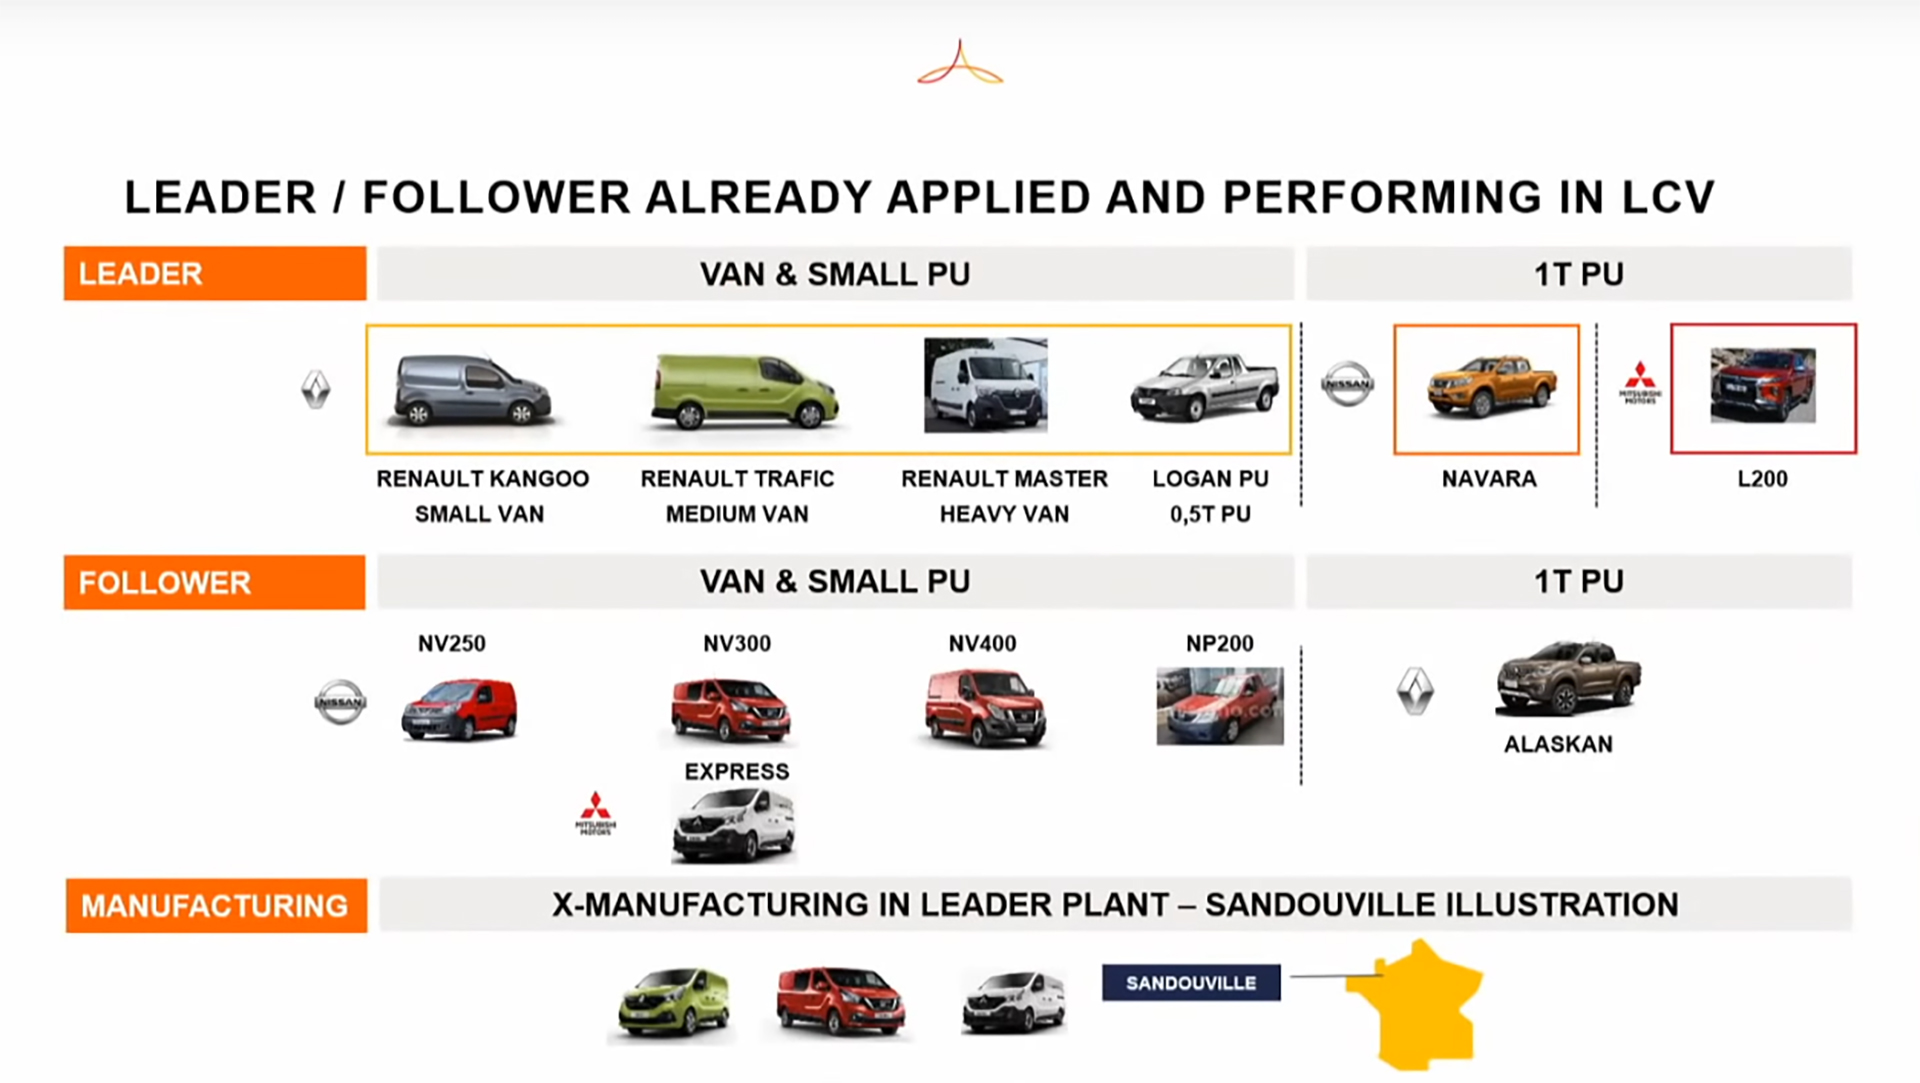 Alliance Renault Nissan Mitsubishi - 2020 -  leader/follower - Light Commercial Vehicles